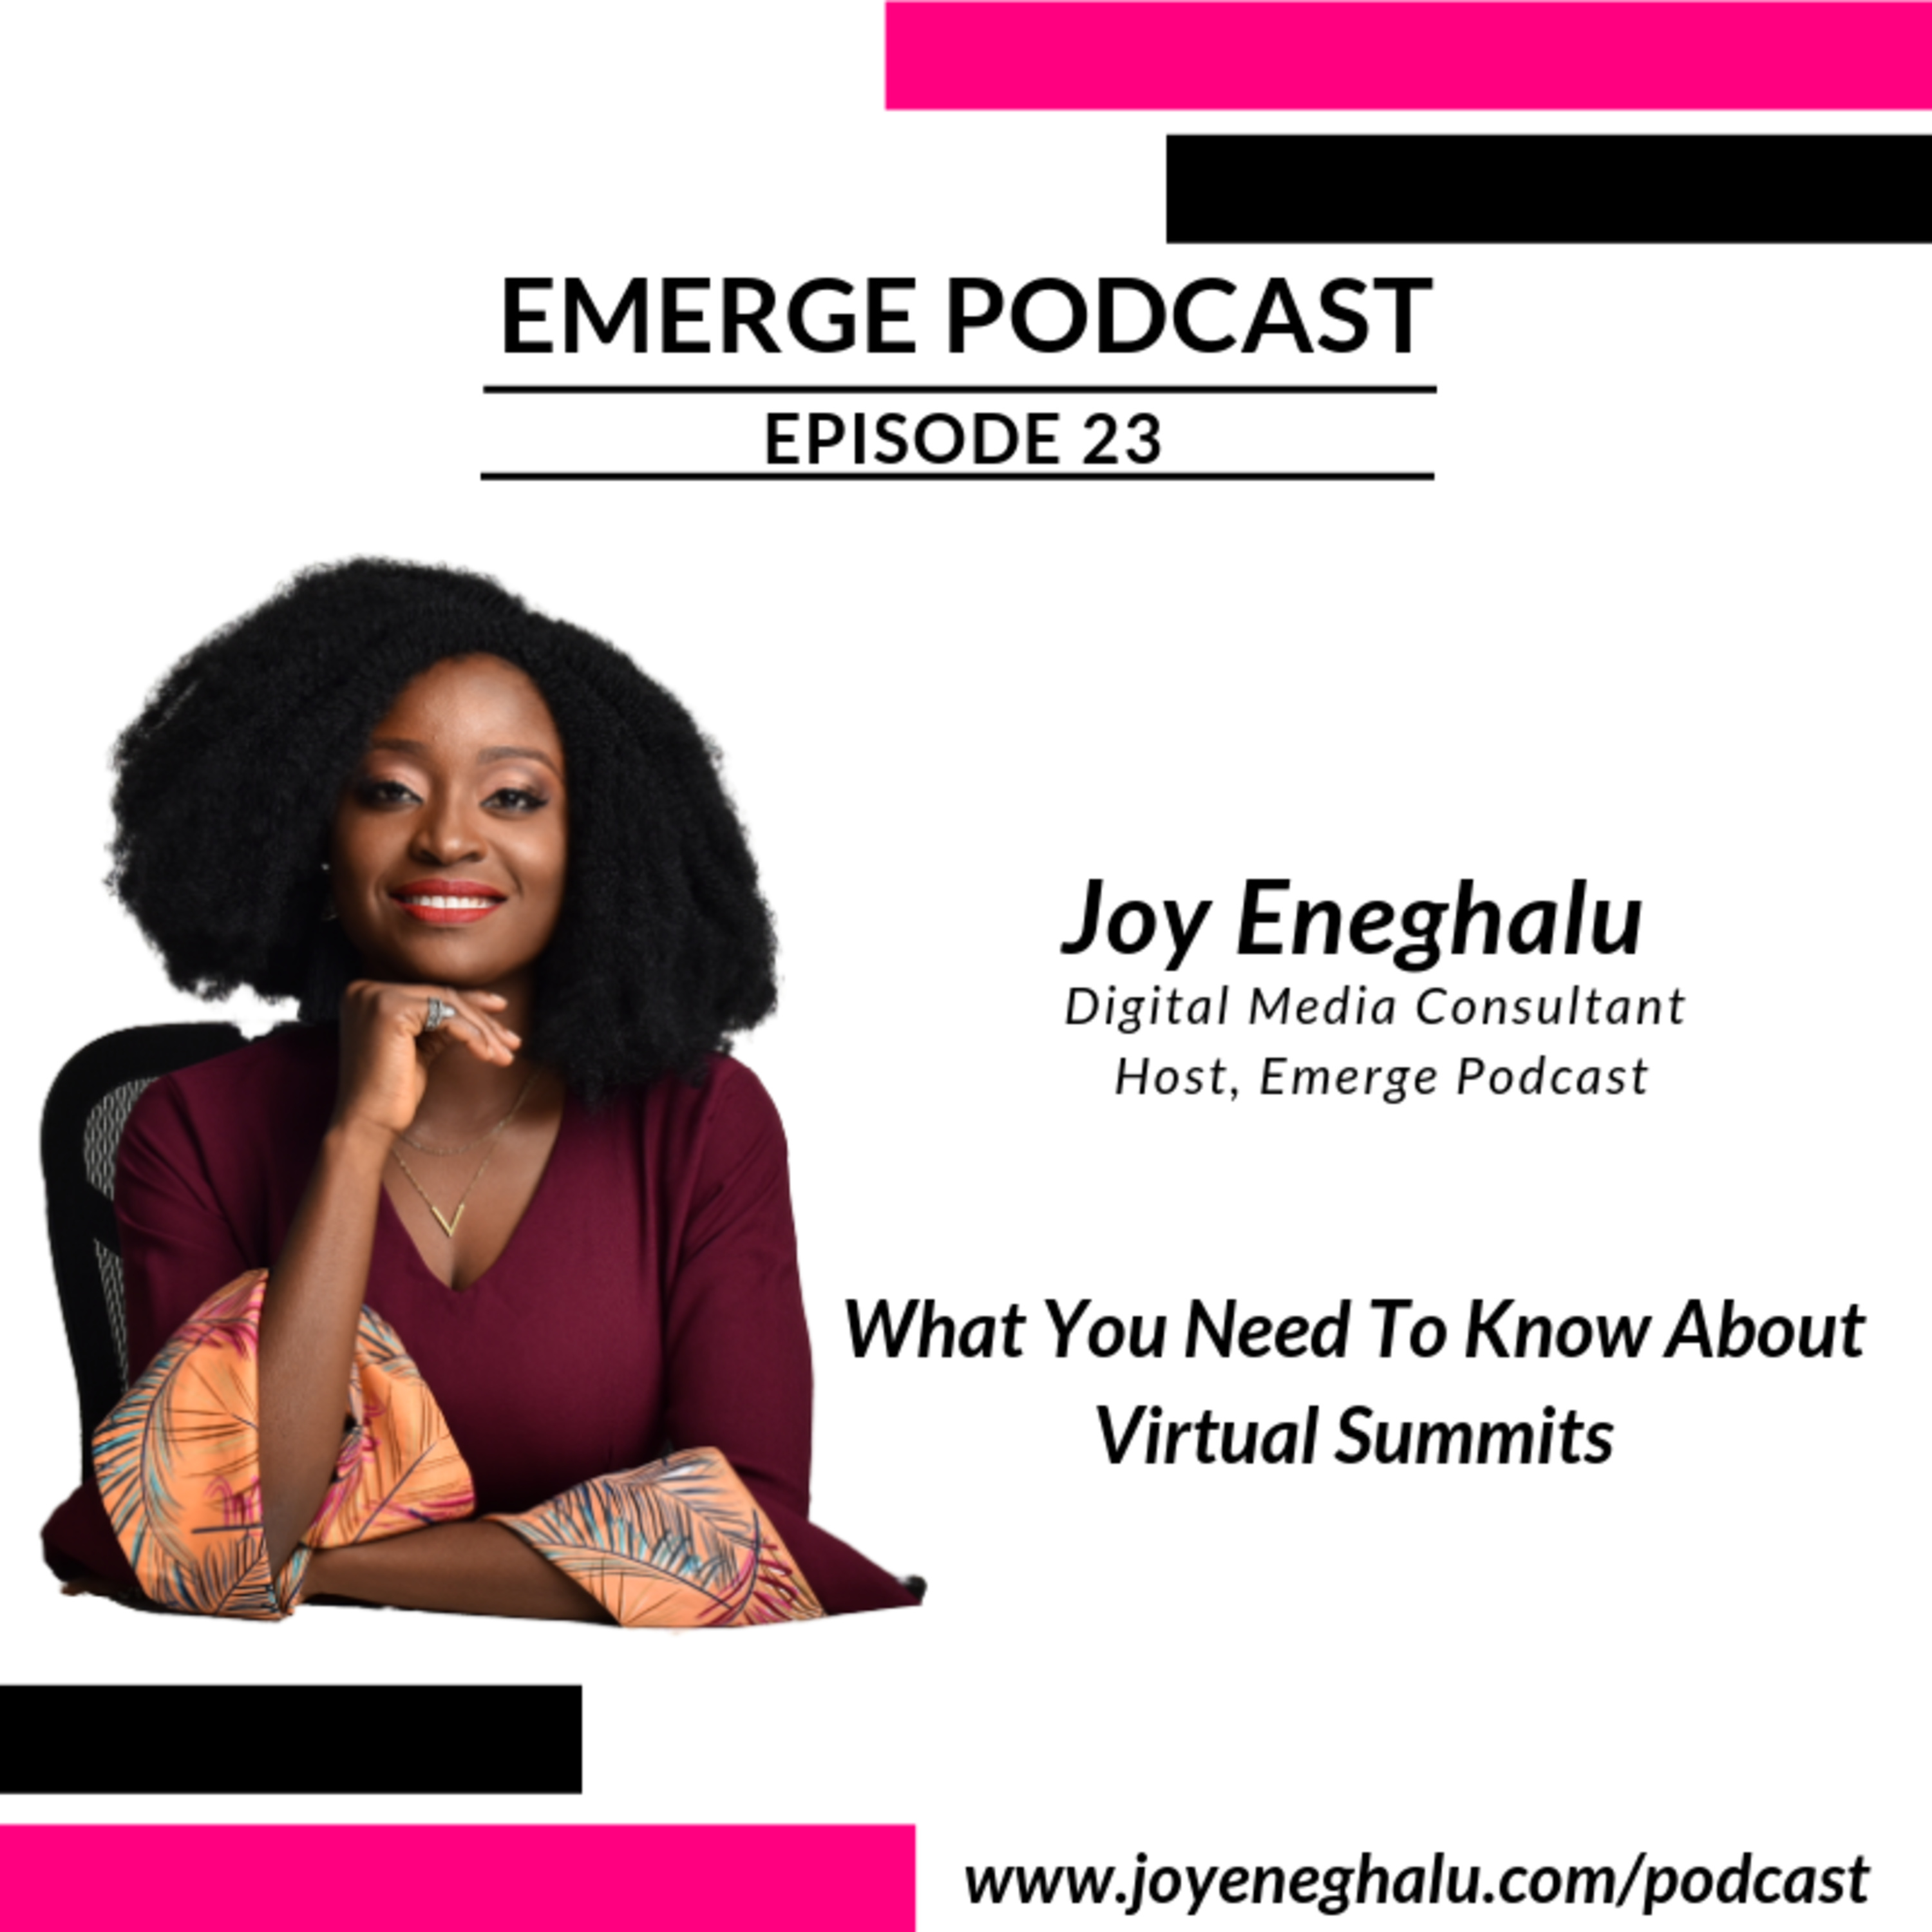 EP 23 - What You Need To Know About Virtual Summits